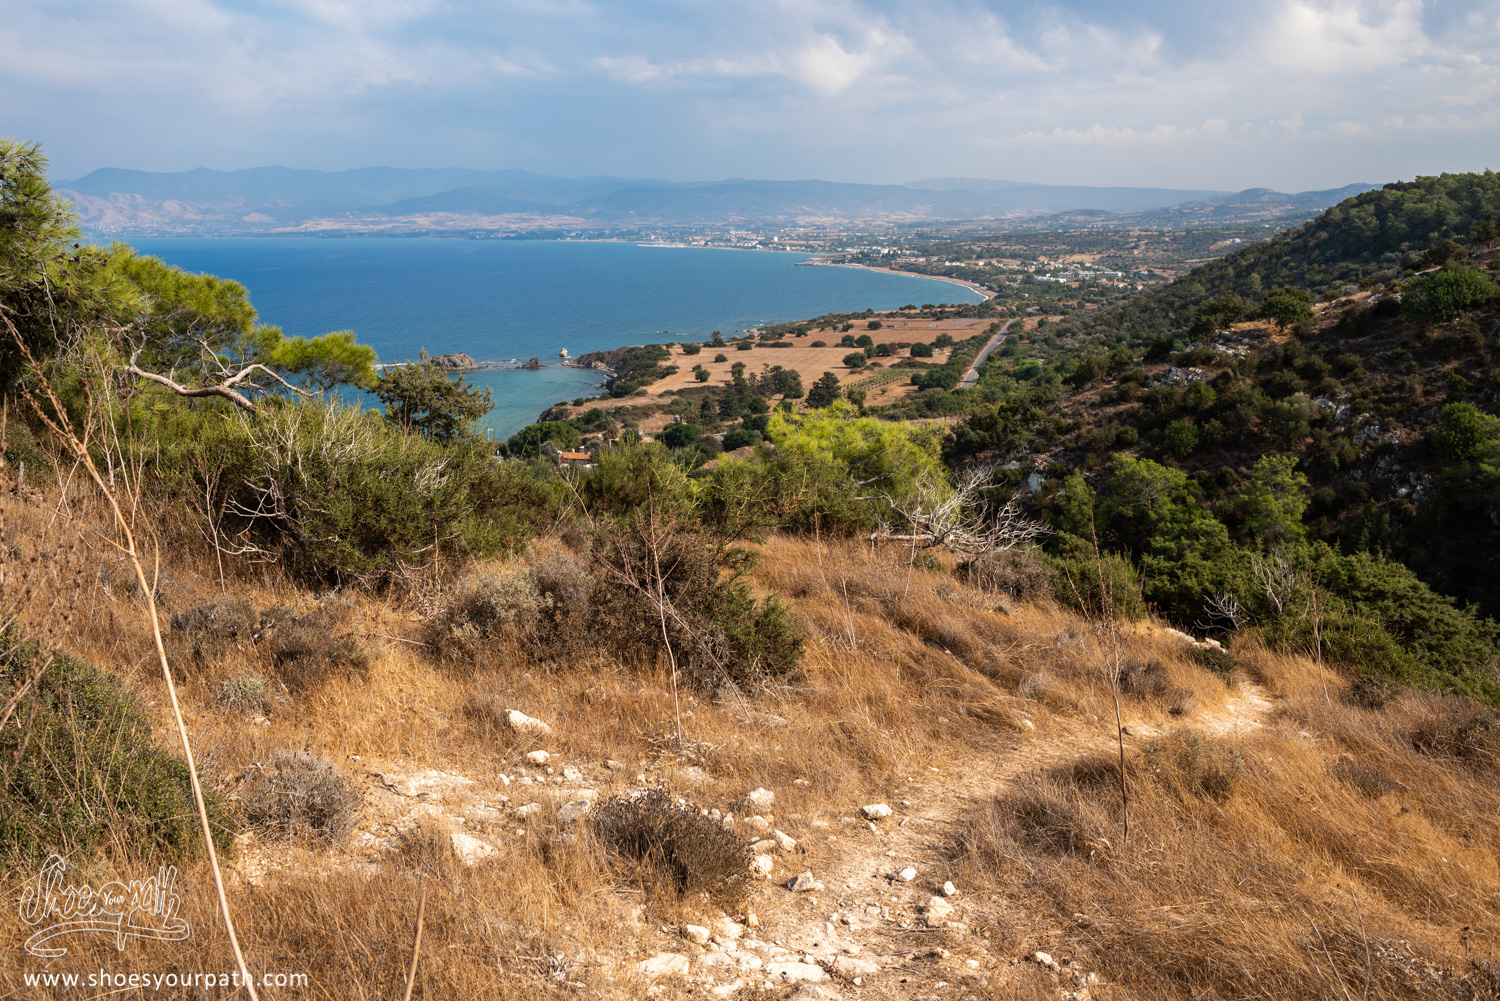 Hiking up on the Adonis Nature Trail, looking over the bay formed by the Akamas Peninsula